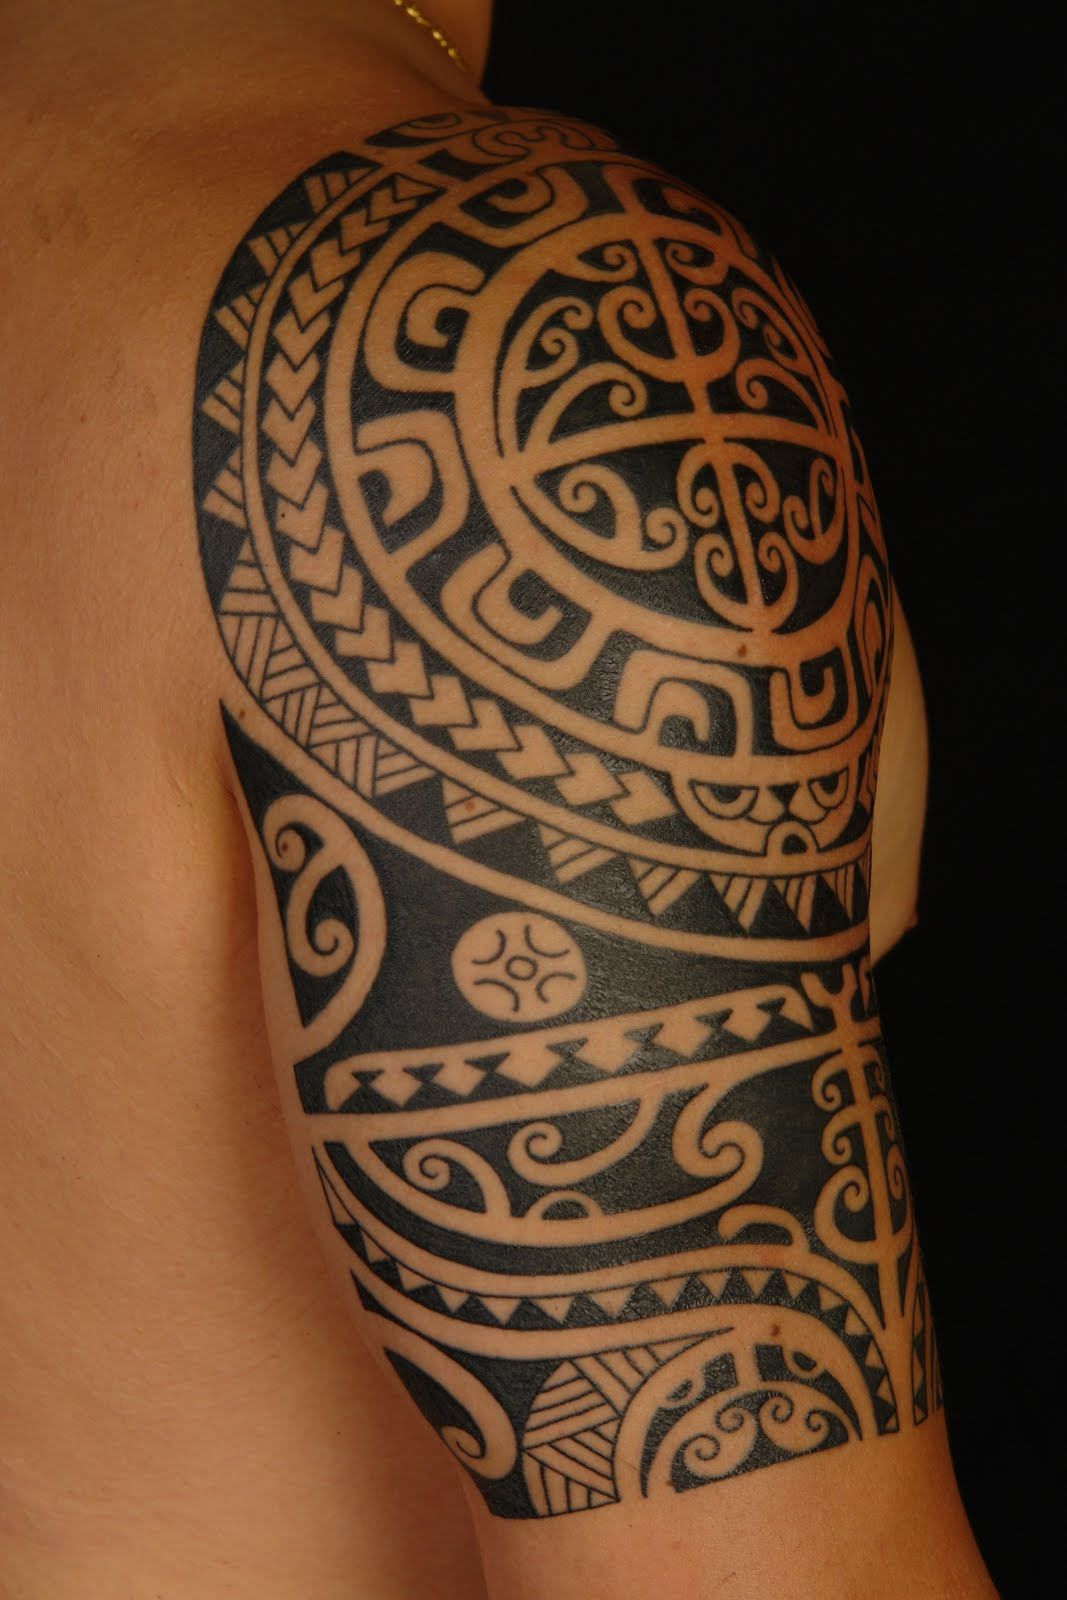 tattoos ideas tribal Tattoos: Maori Tattoo Art Art Traditional Maori and World Body Tattoos